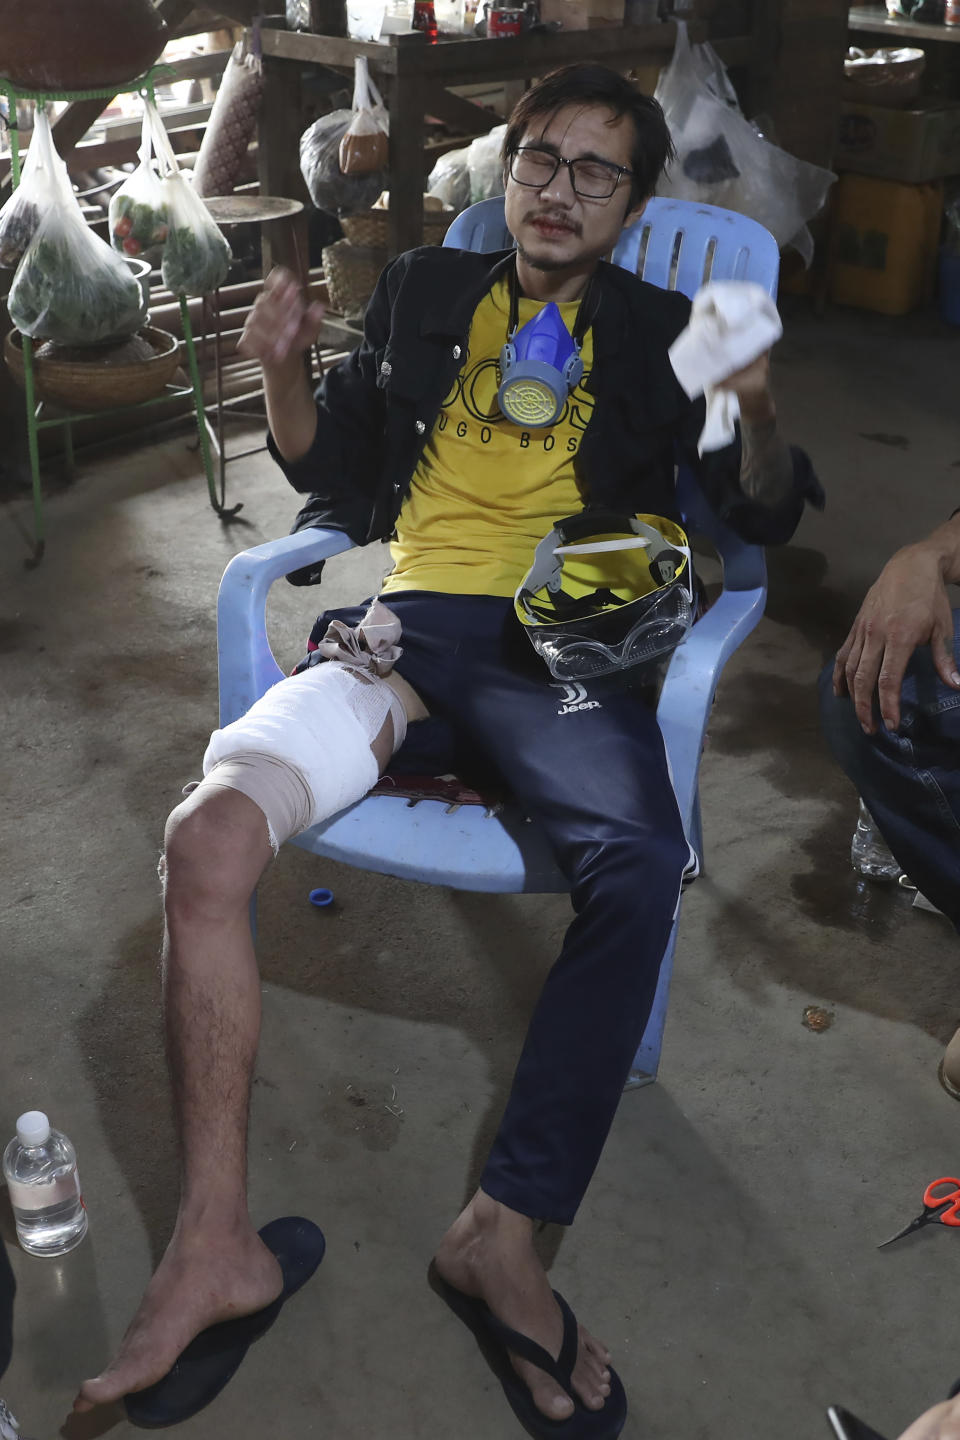 A man is injured on his right leg after security forces dispersed an anti-coup demonstration in Mandalay, Myanmar, Saturday, March 13, 2021. Police in Myanmar fired rubber bullets and tear gas at protesters in the country's two largest cities and elsewhere on Friday, as authorities continued their harsh crackdown on opponents of last month's military coup. (AP Photo)